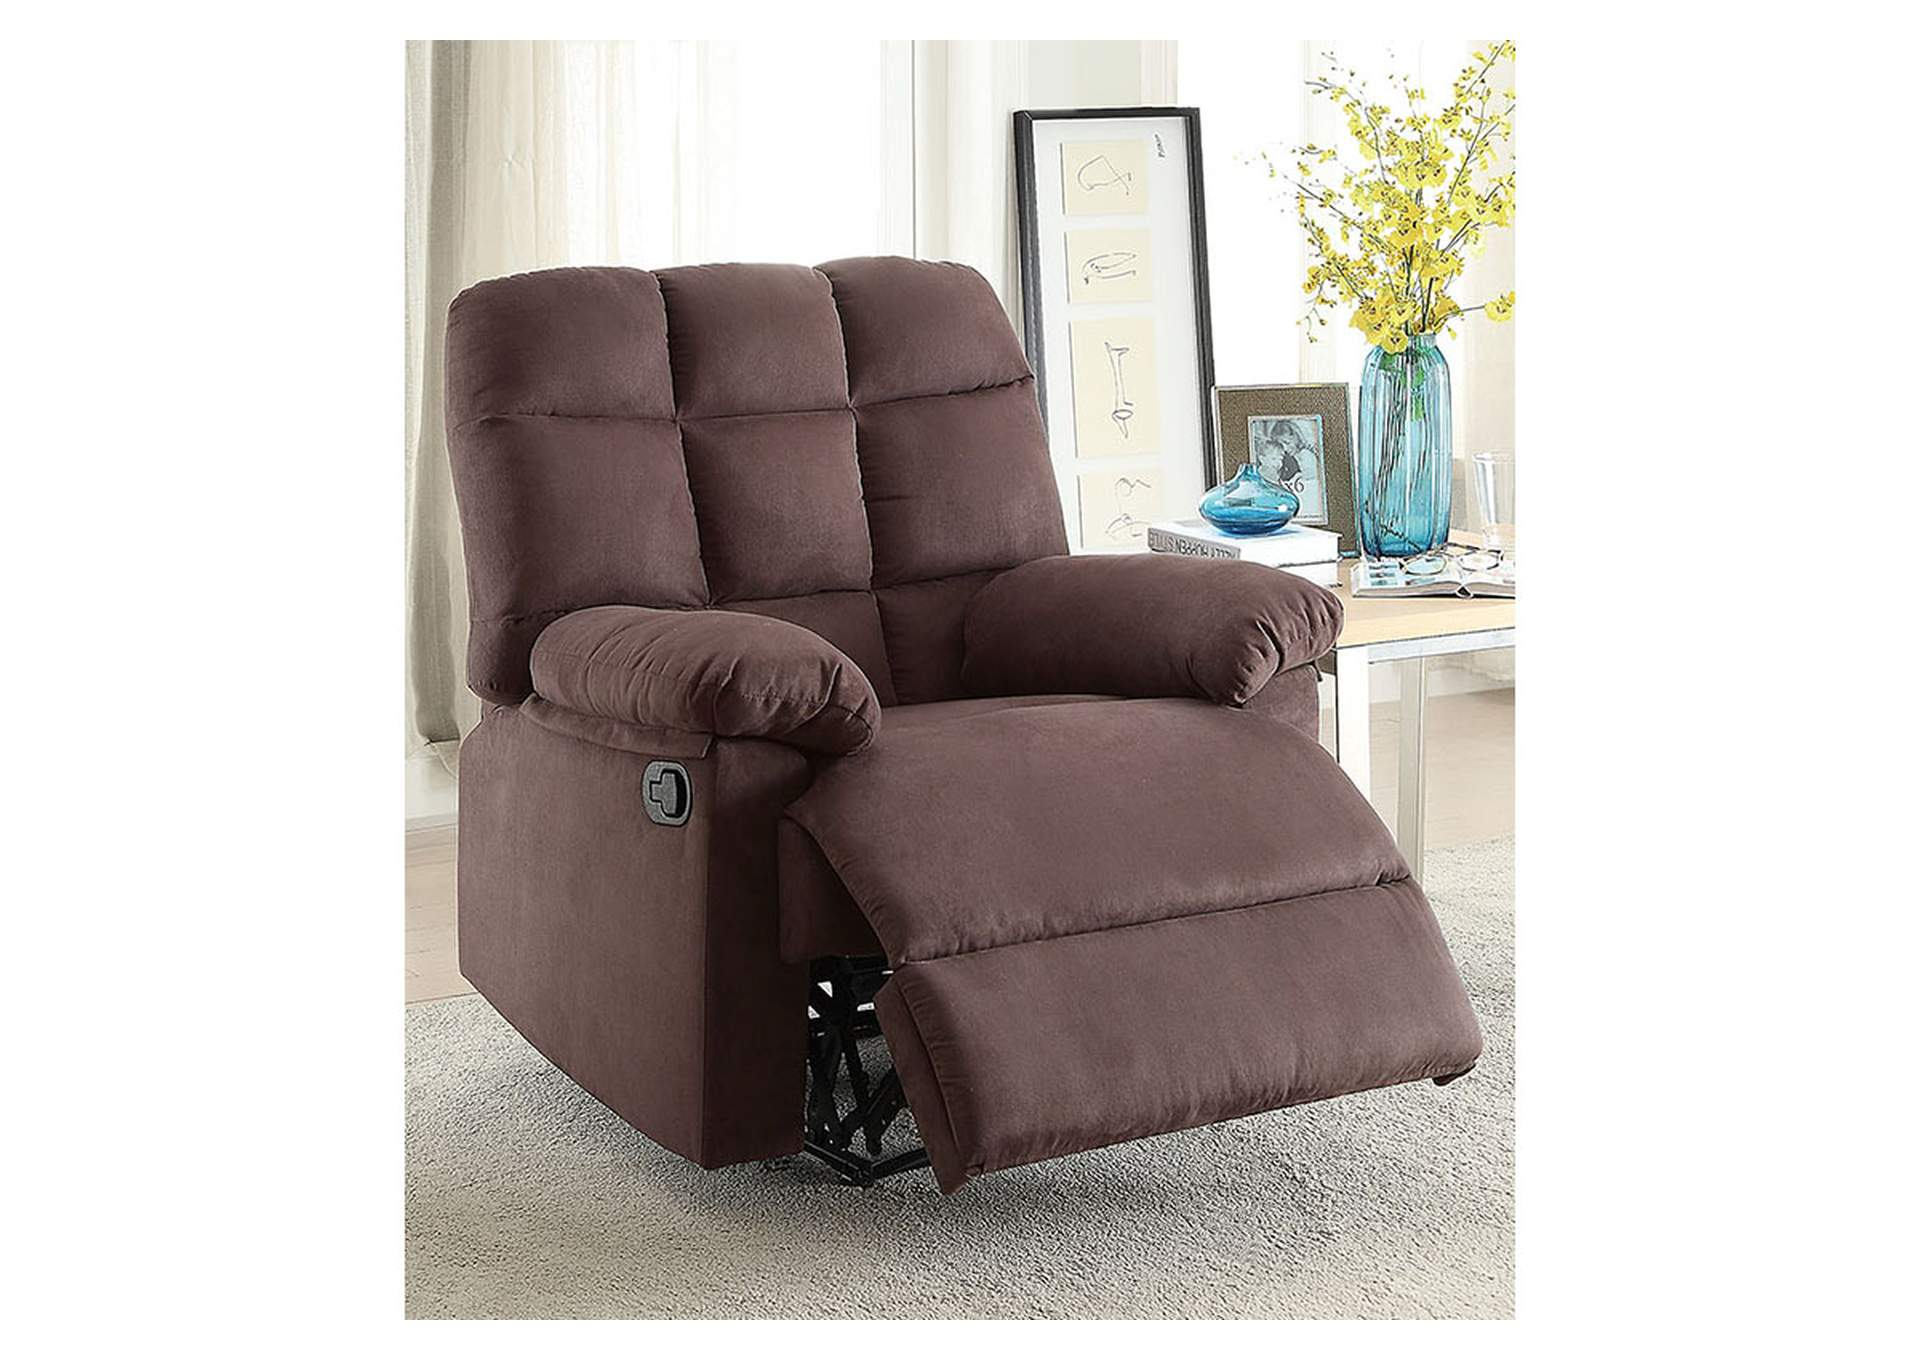 Chocolate Motion Recliner,Poundex